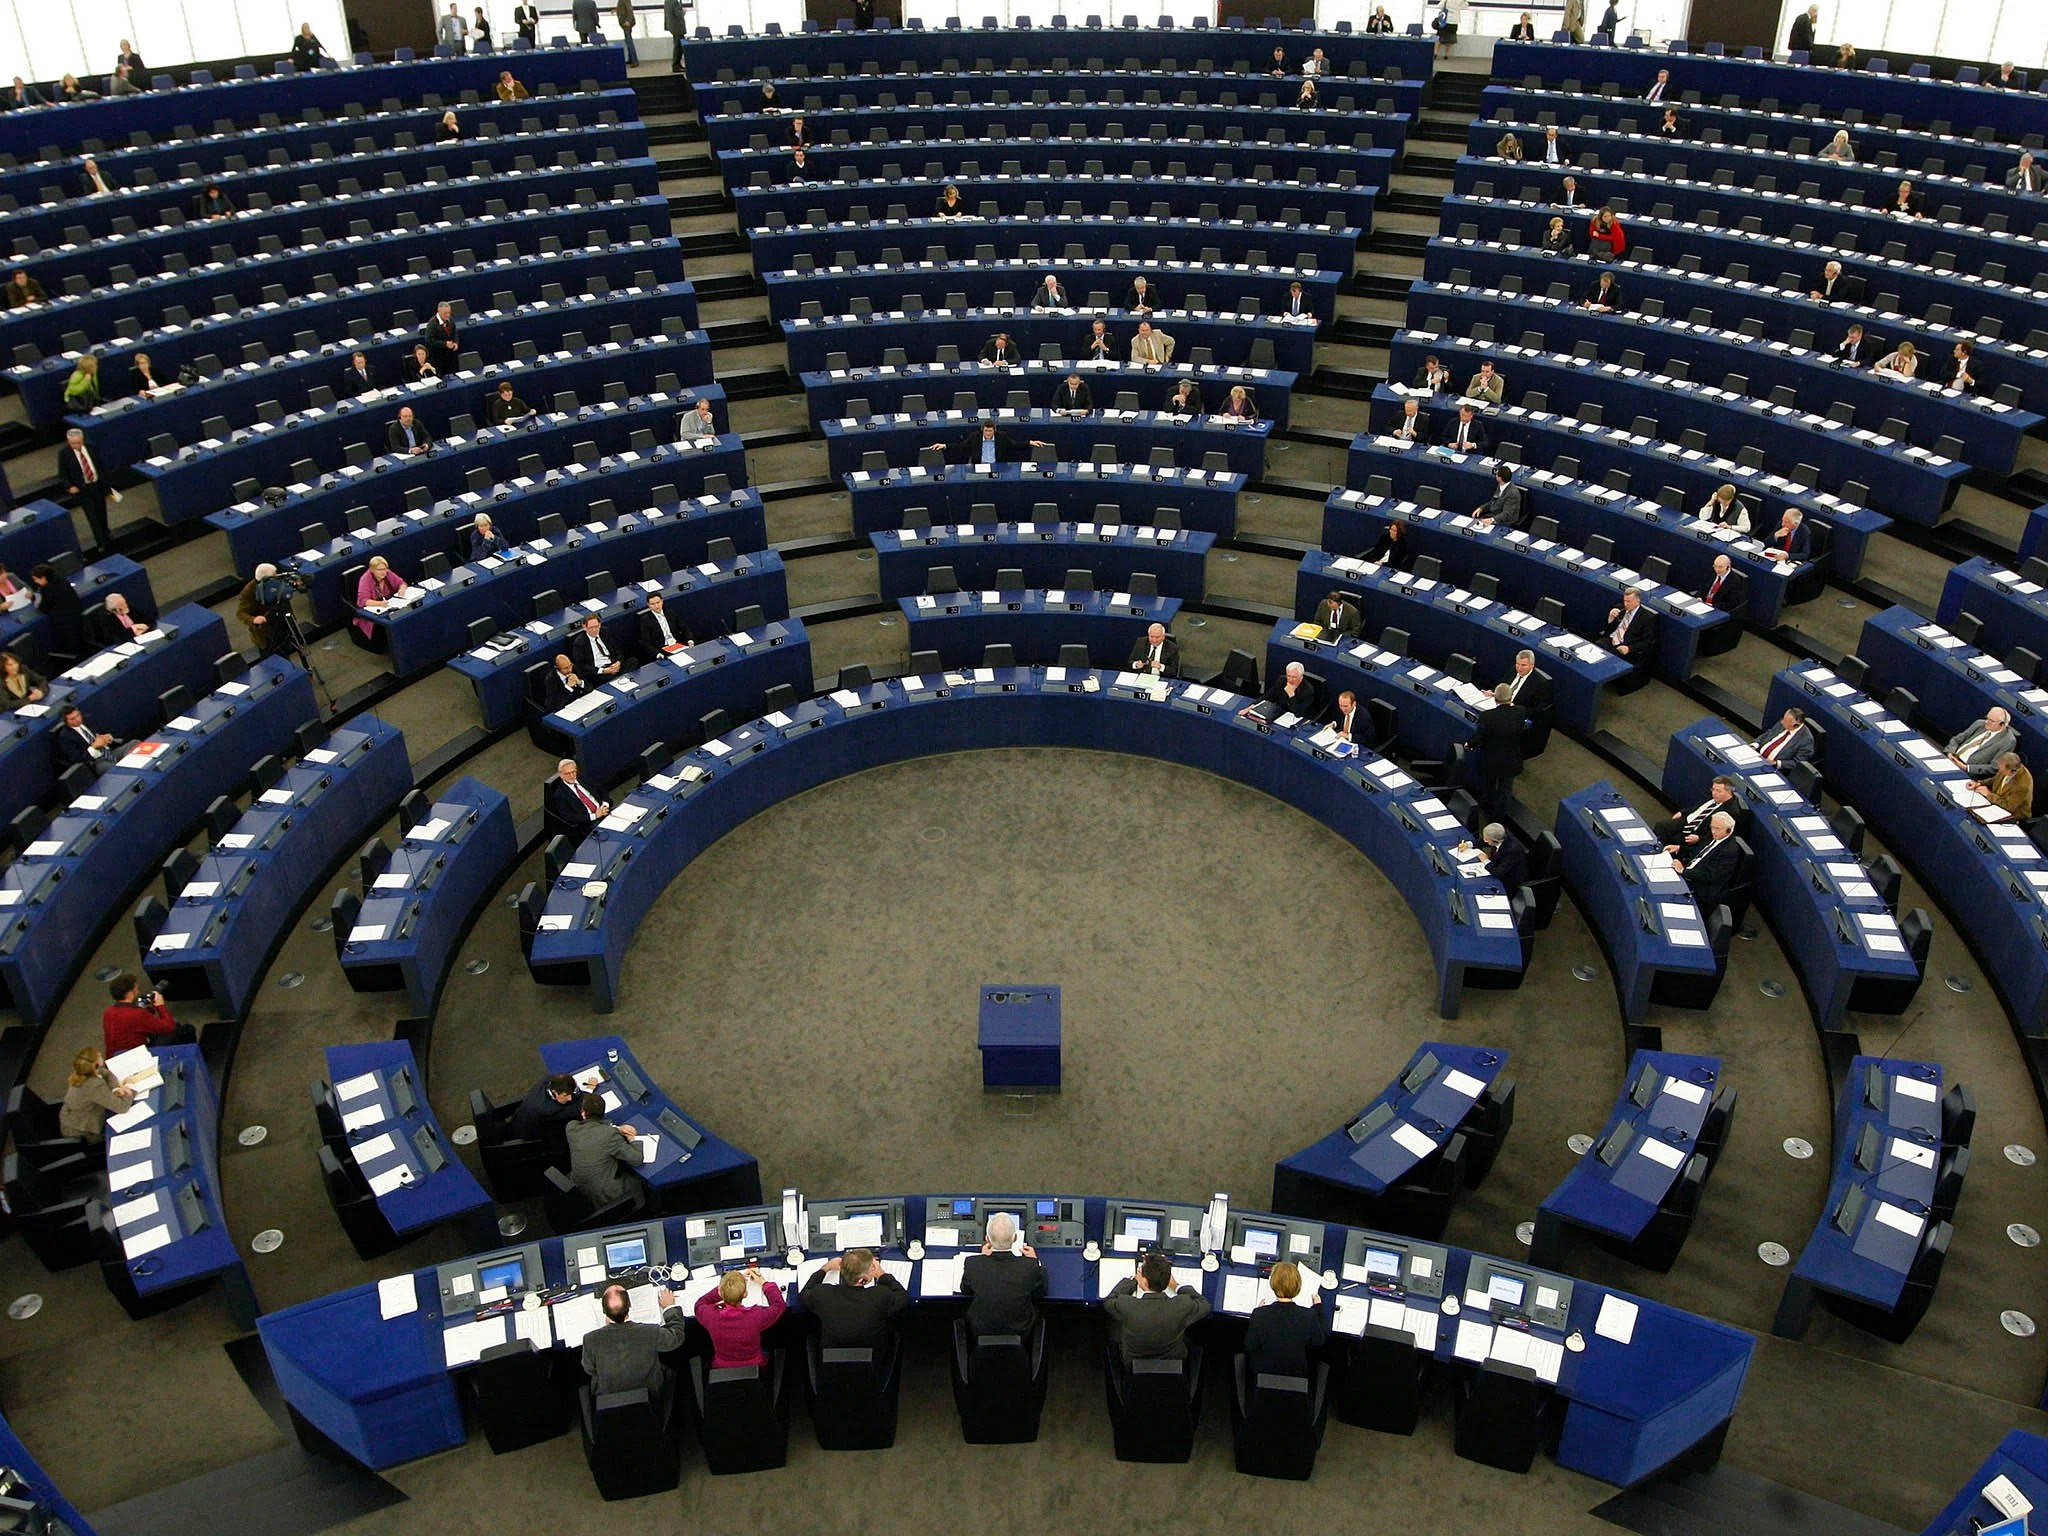 European Parliament sets Sunday deadline for approving Brexit deal this year